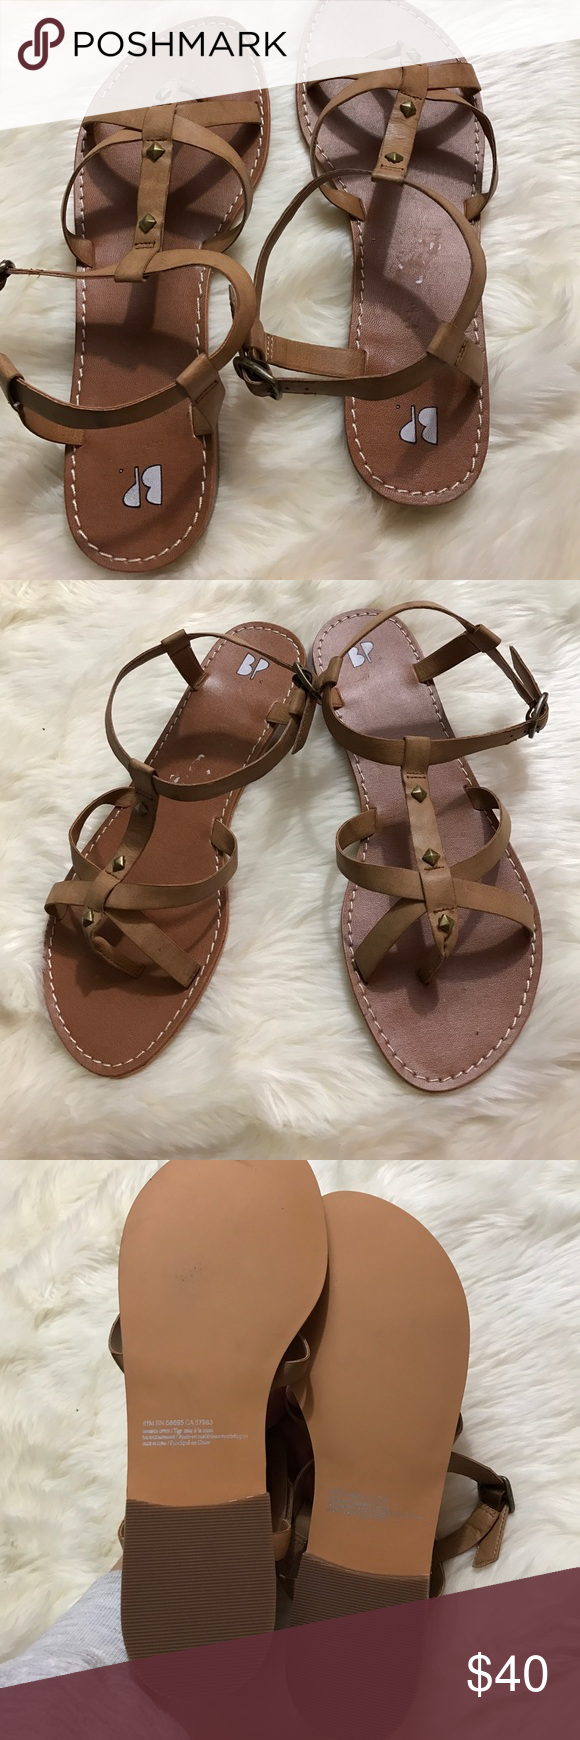 BP SANDALS Size 8.5M NWOT New without tags or box. Size 8.5. No flaws. Perfect for spring and summer. Sorry no trades! Offers are absolutely welcome. 😊 bp Shoes Sandals